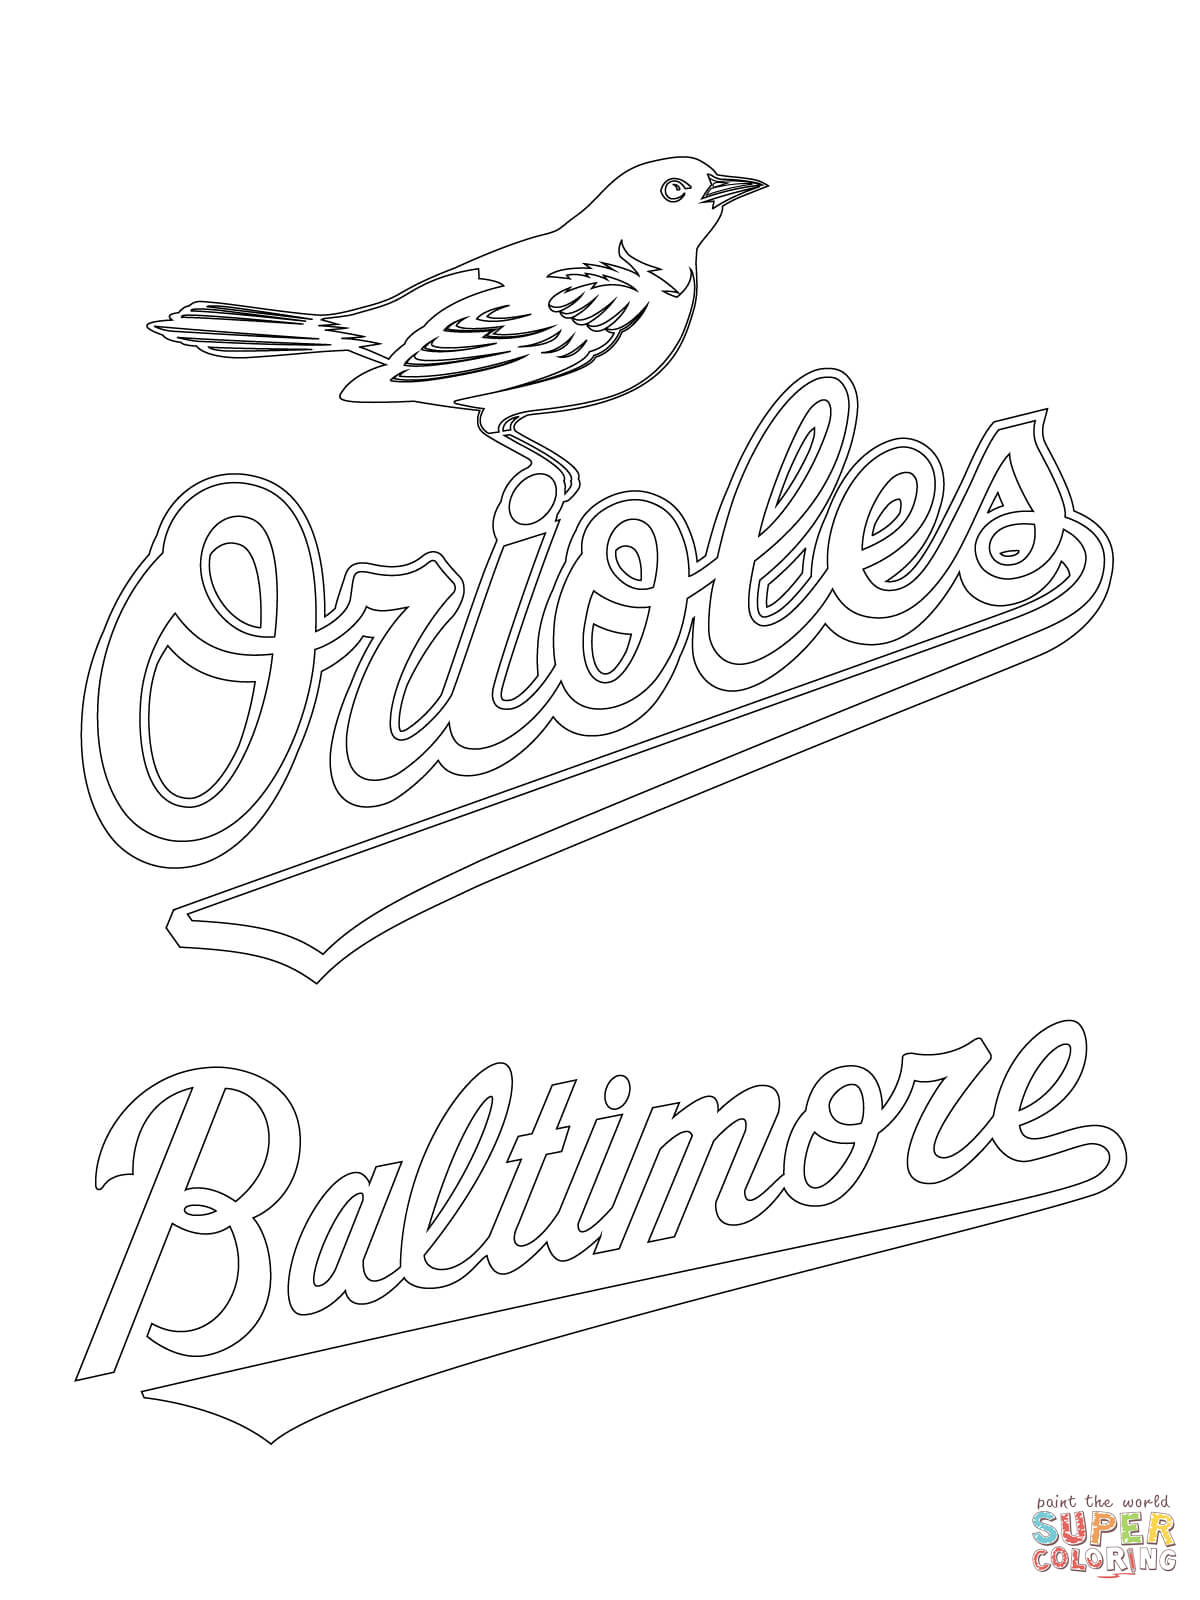 Baltimore coloring #17, Download drawings